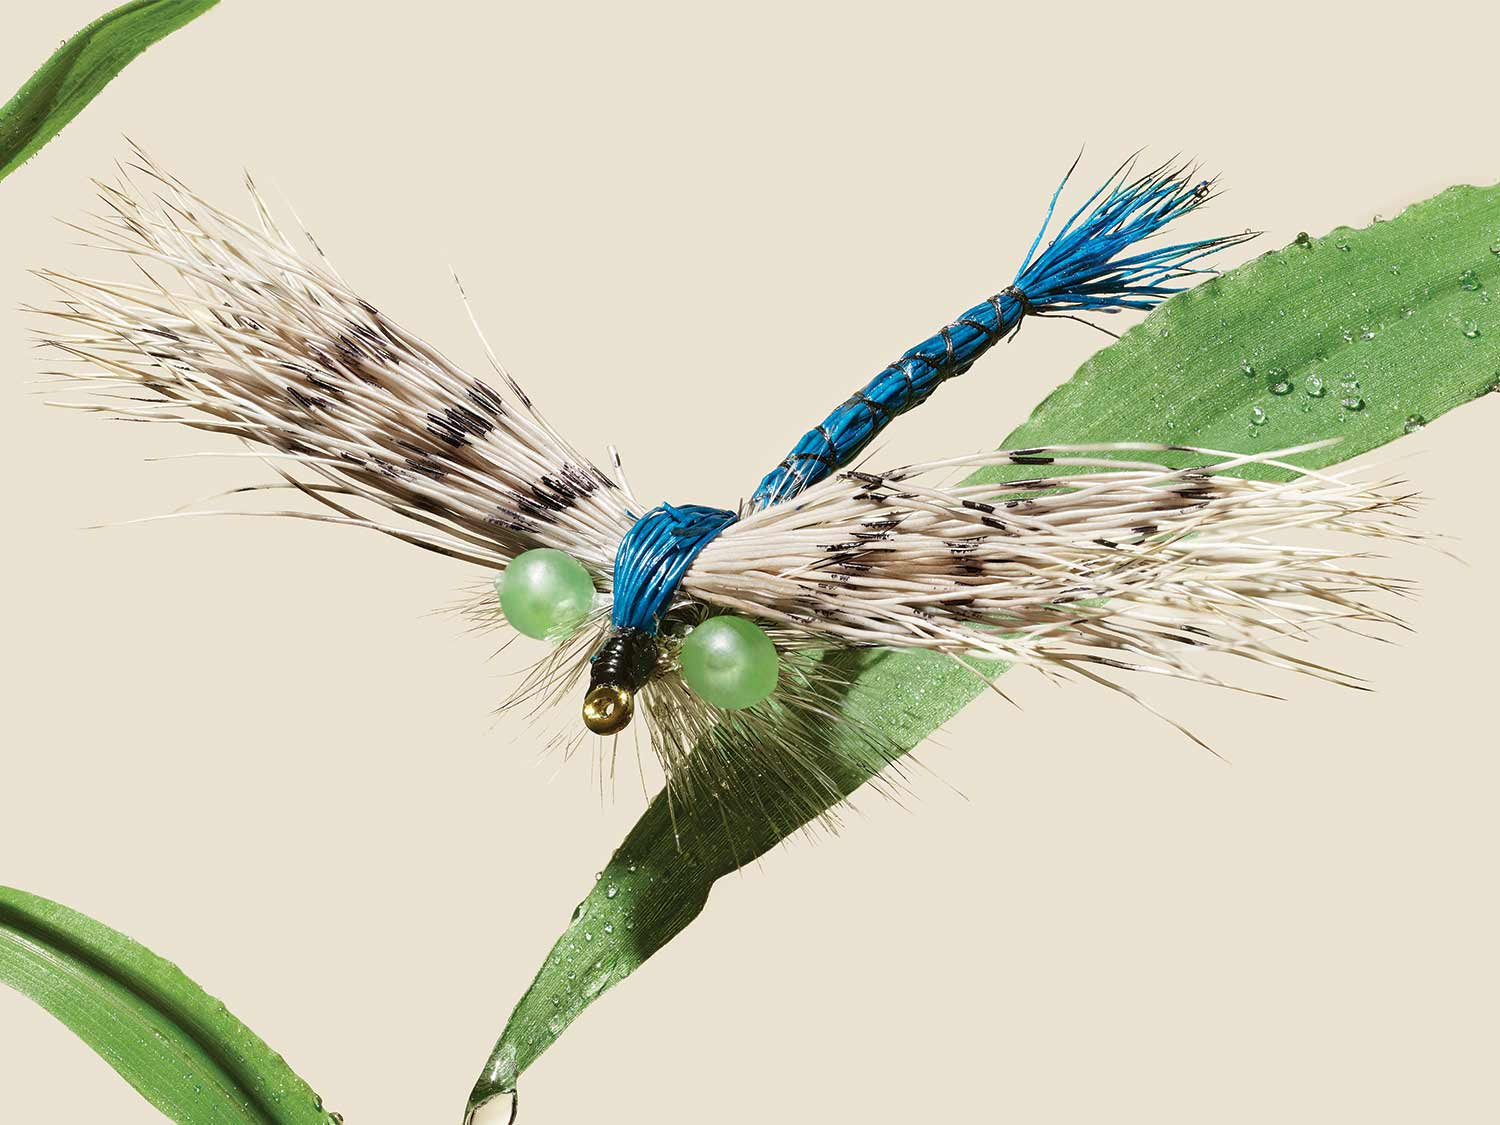 Flyfishing Tips for Catching Late-Summer Trout on Terrestrials